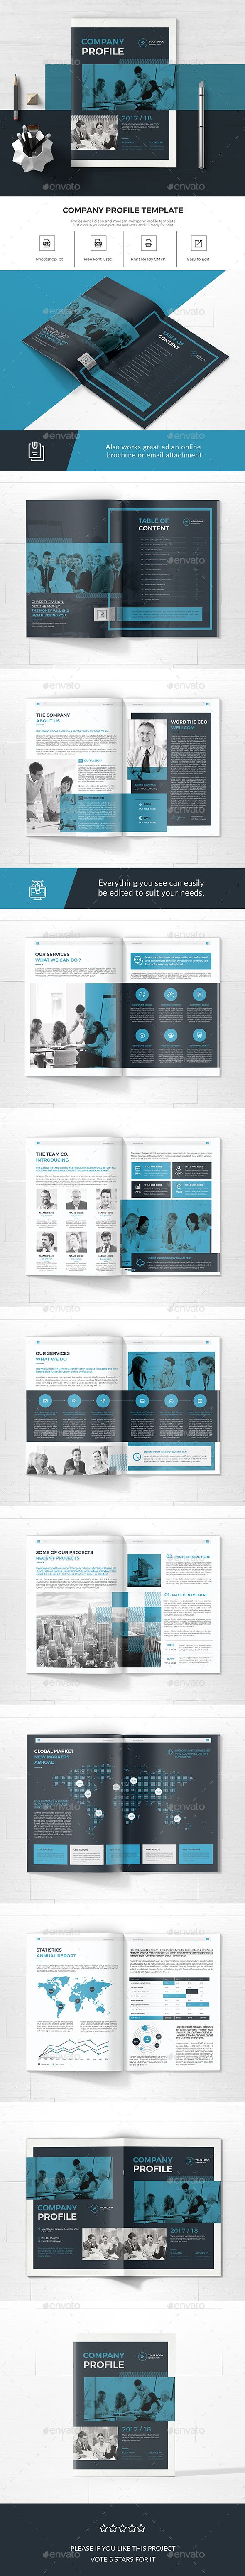 Company Profile — Photoshop PSD #horizontal #corporate • Available here ➝ https://graphicriver.net/item/company-profile/20692590?ref=pxcr